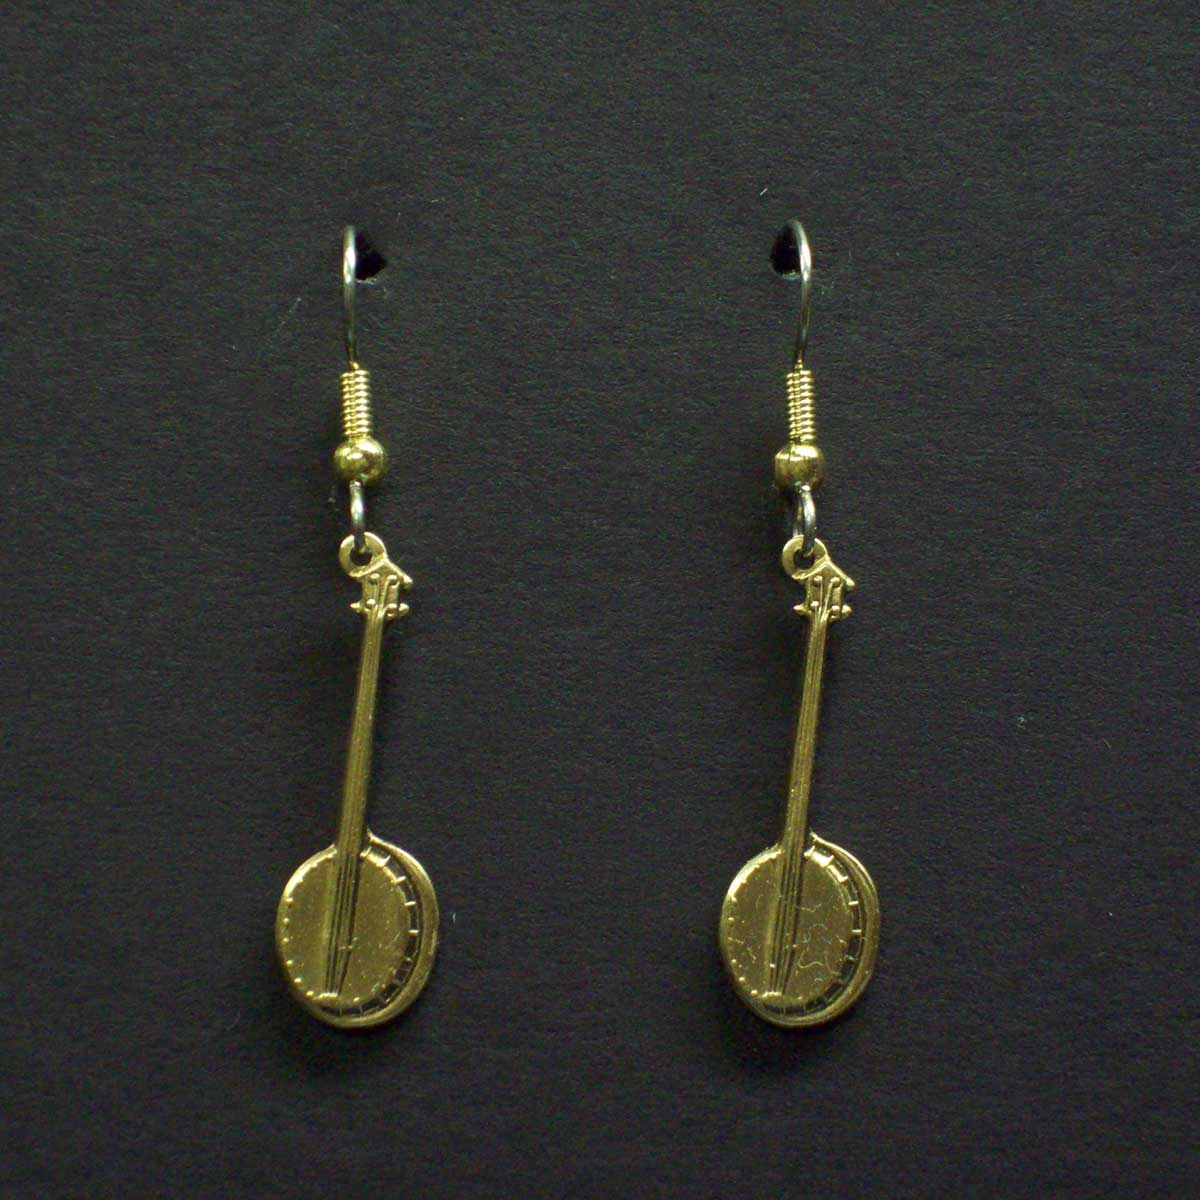 Small Dangle Banjo Earrings